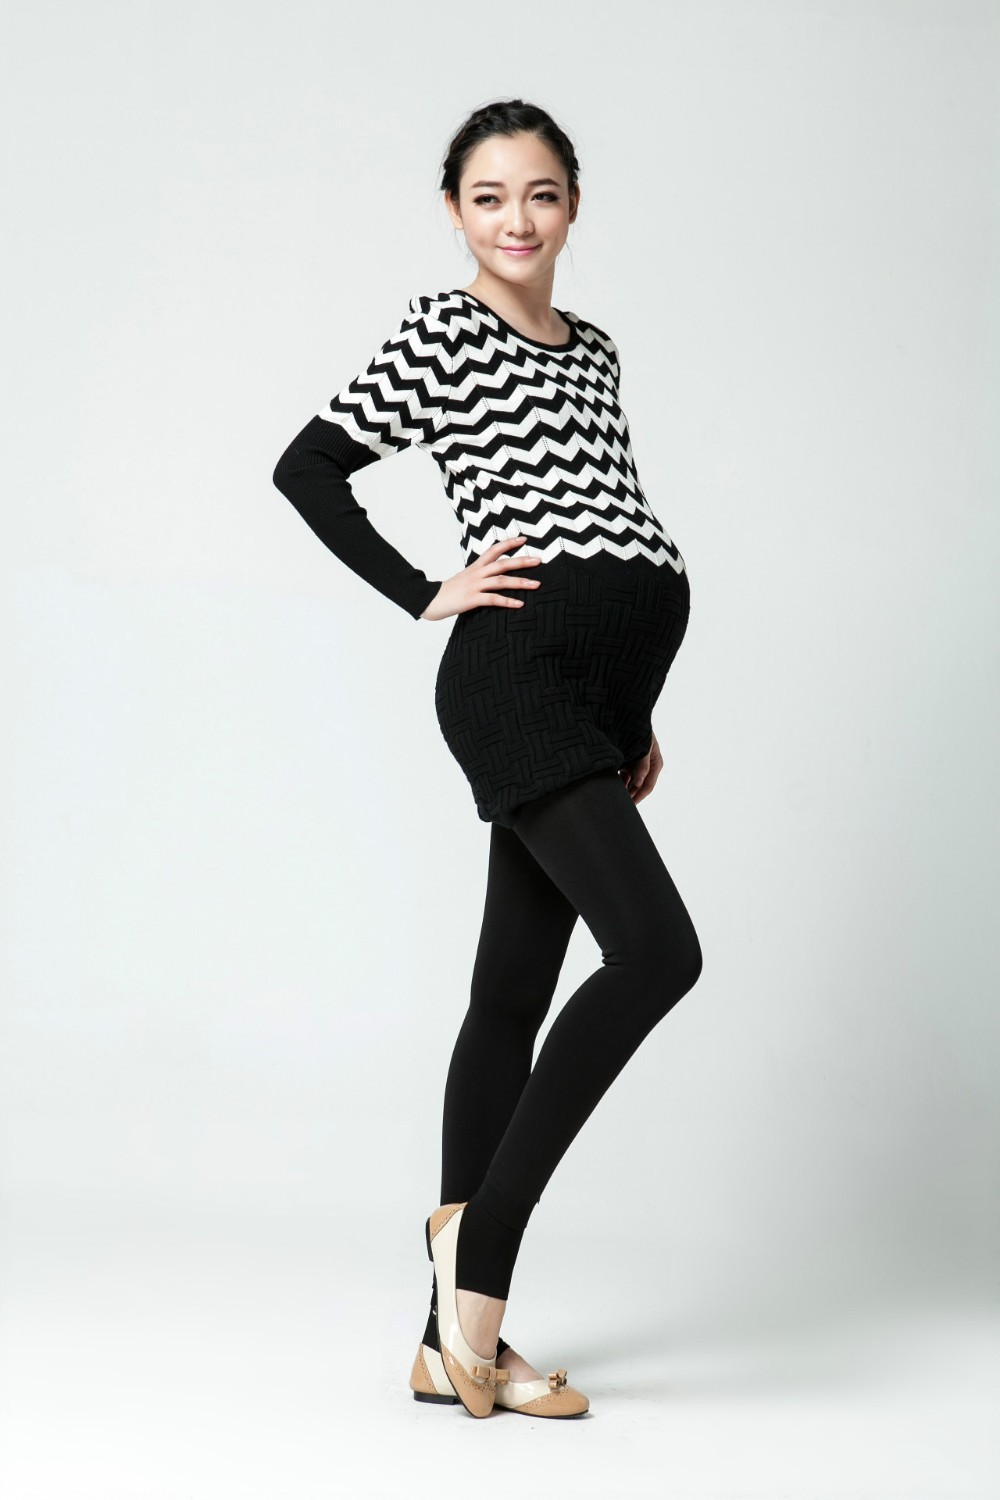 Women clothing maternity clothes winter Leggings thickened with velvet pregnant women trousers warm pants 8